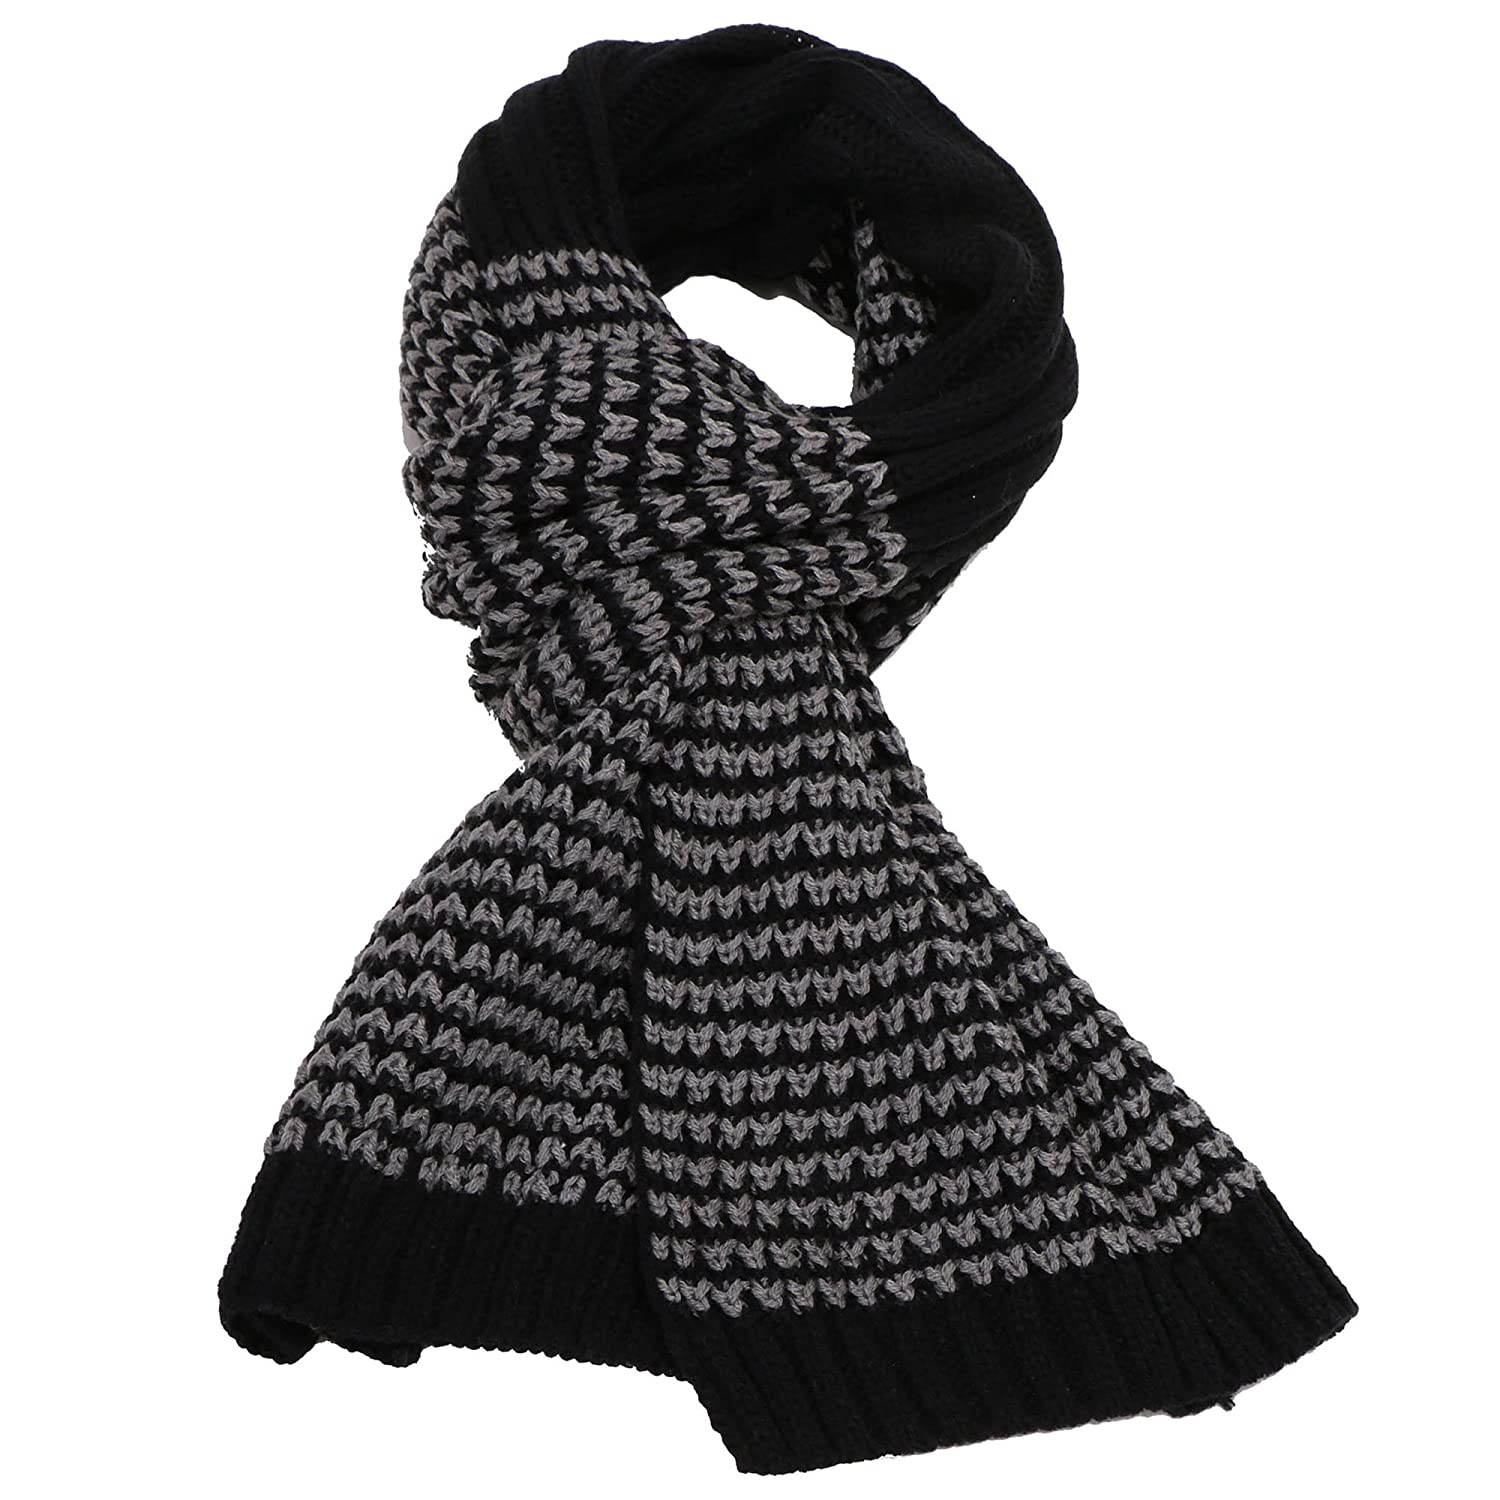 Simplicity Men / Women Cable Stripe Knit Winter Scarf – Solid / Two Tone Color Black onesize 88-B15080033-01